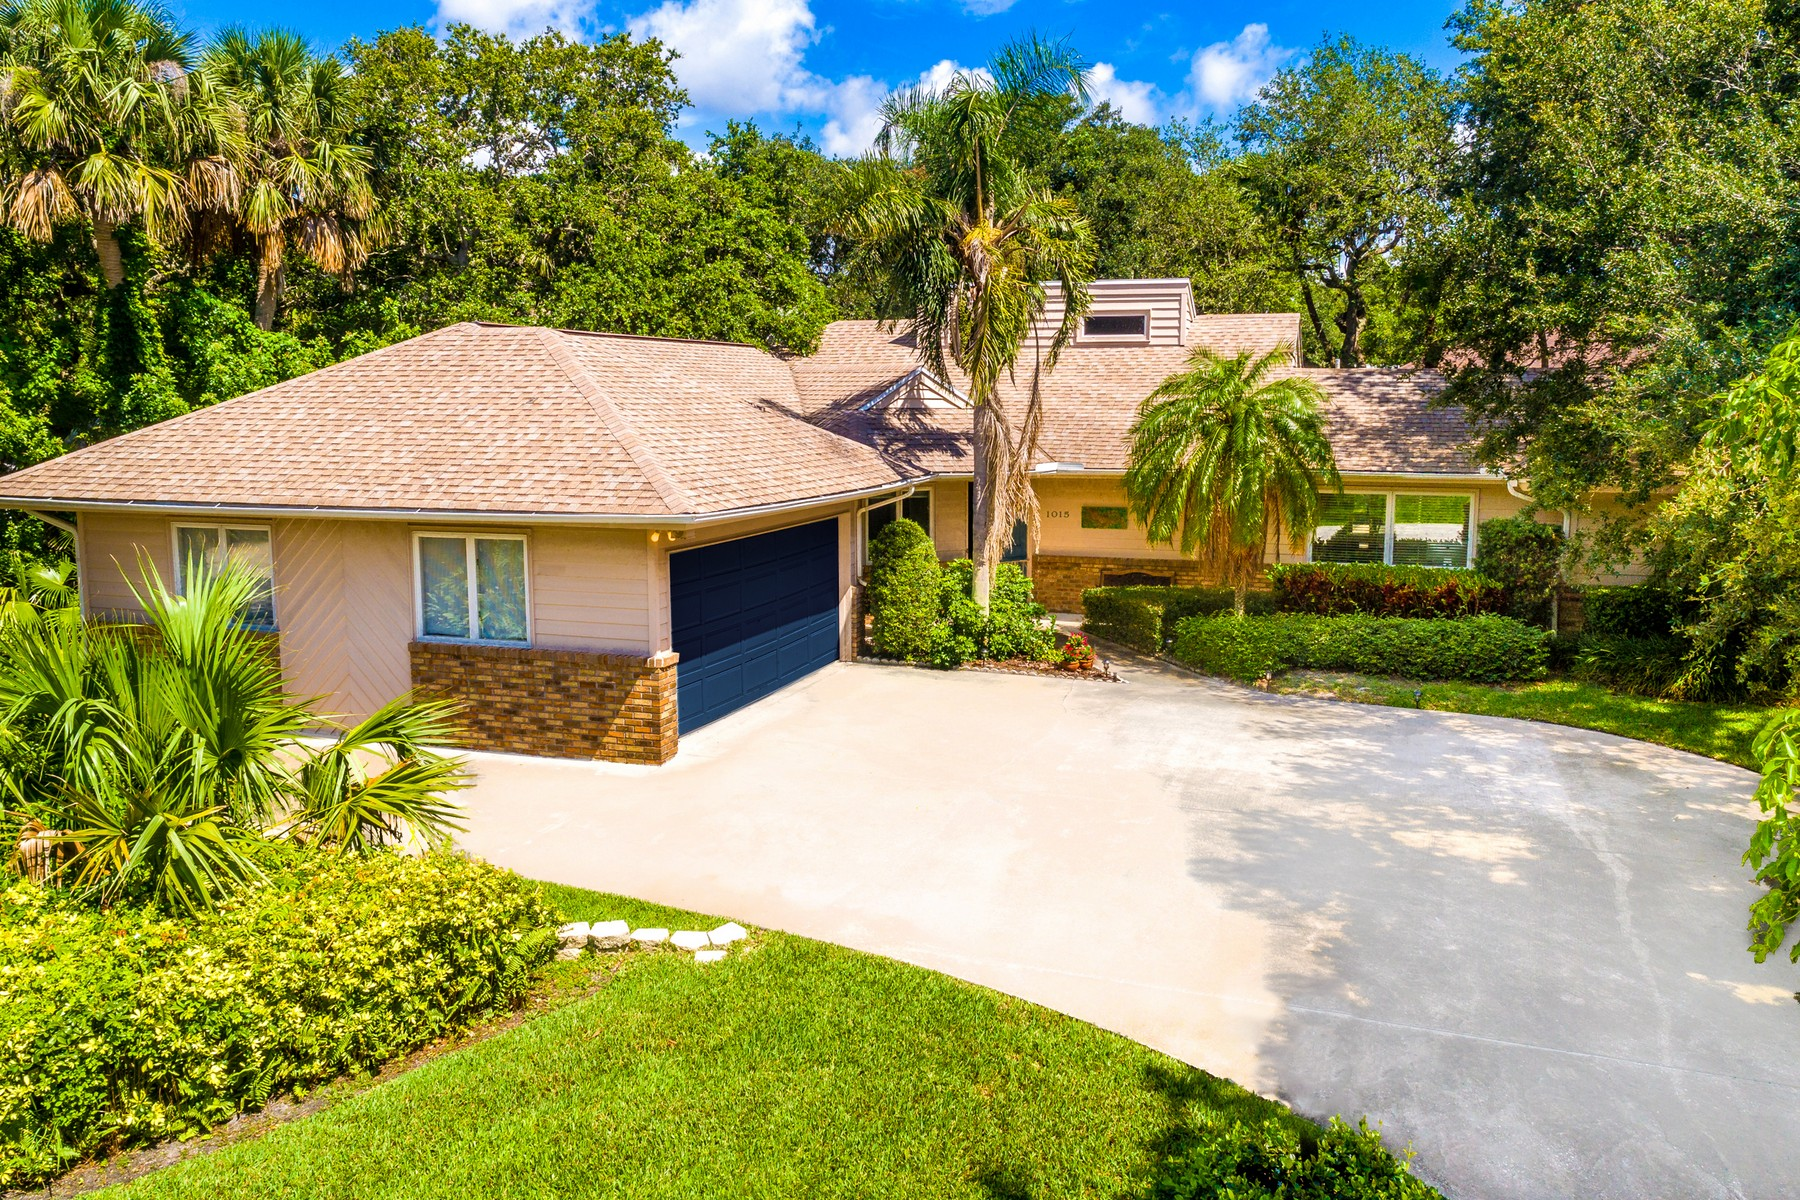 House for Sale at Lovely Four Bedroom Home on Vero's Barrier Island 1015 Mangrove Lane Vero Beach, Florida 32963 United States